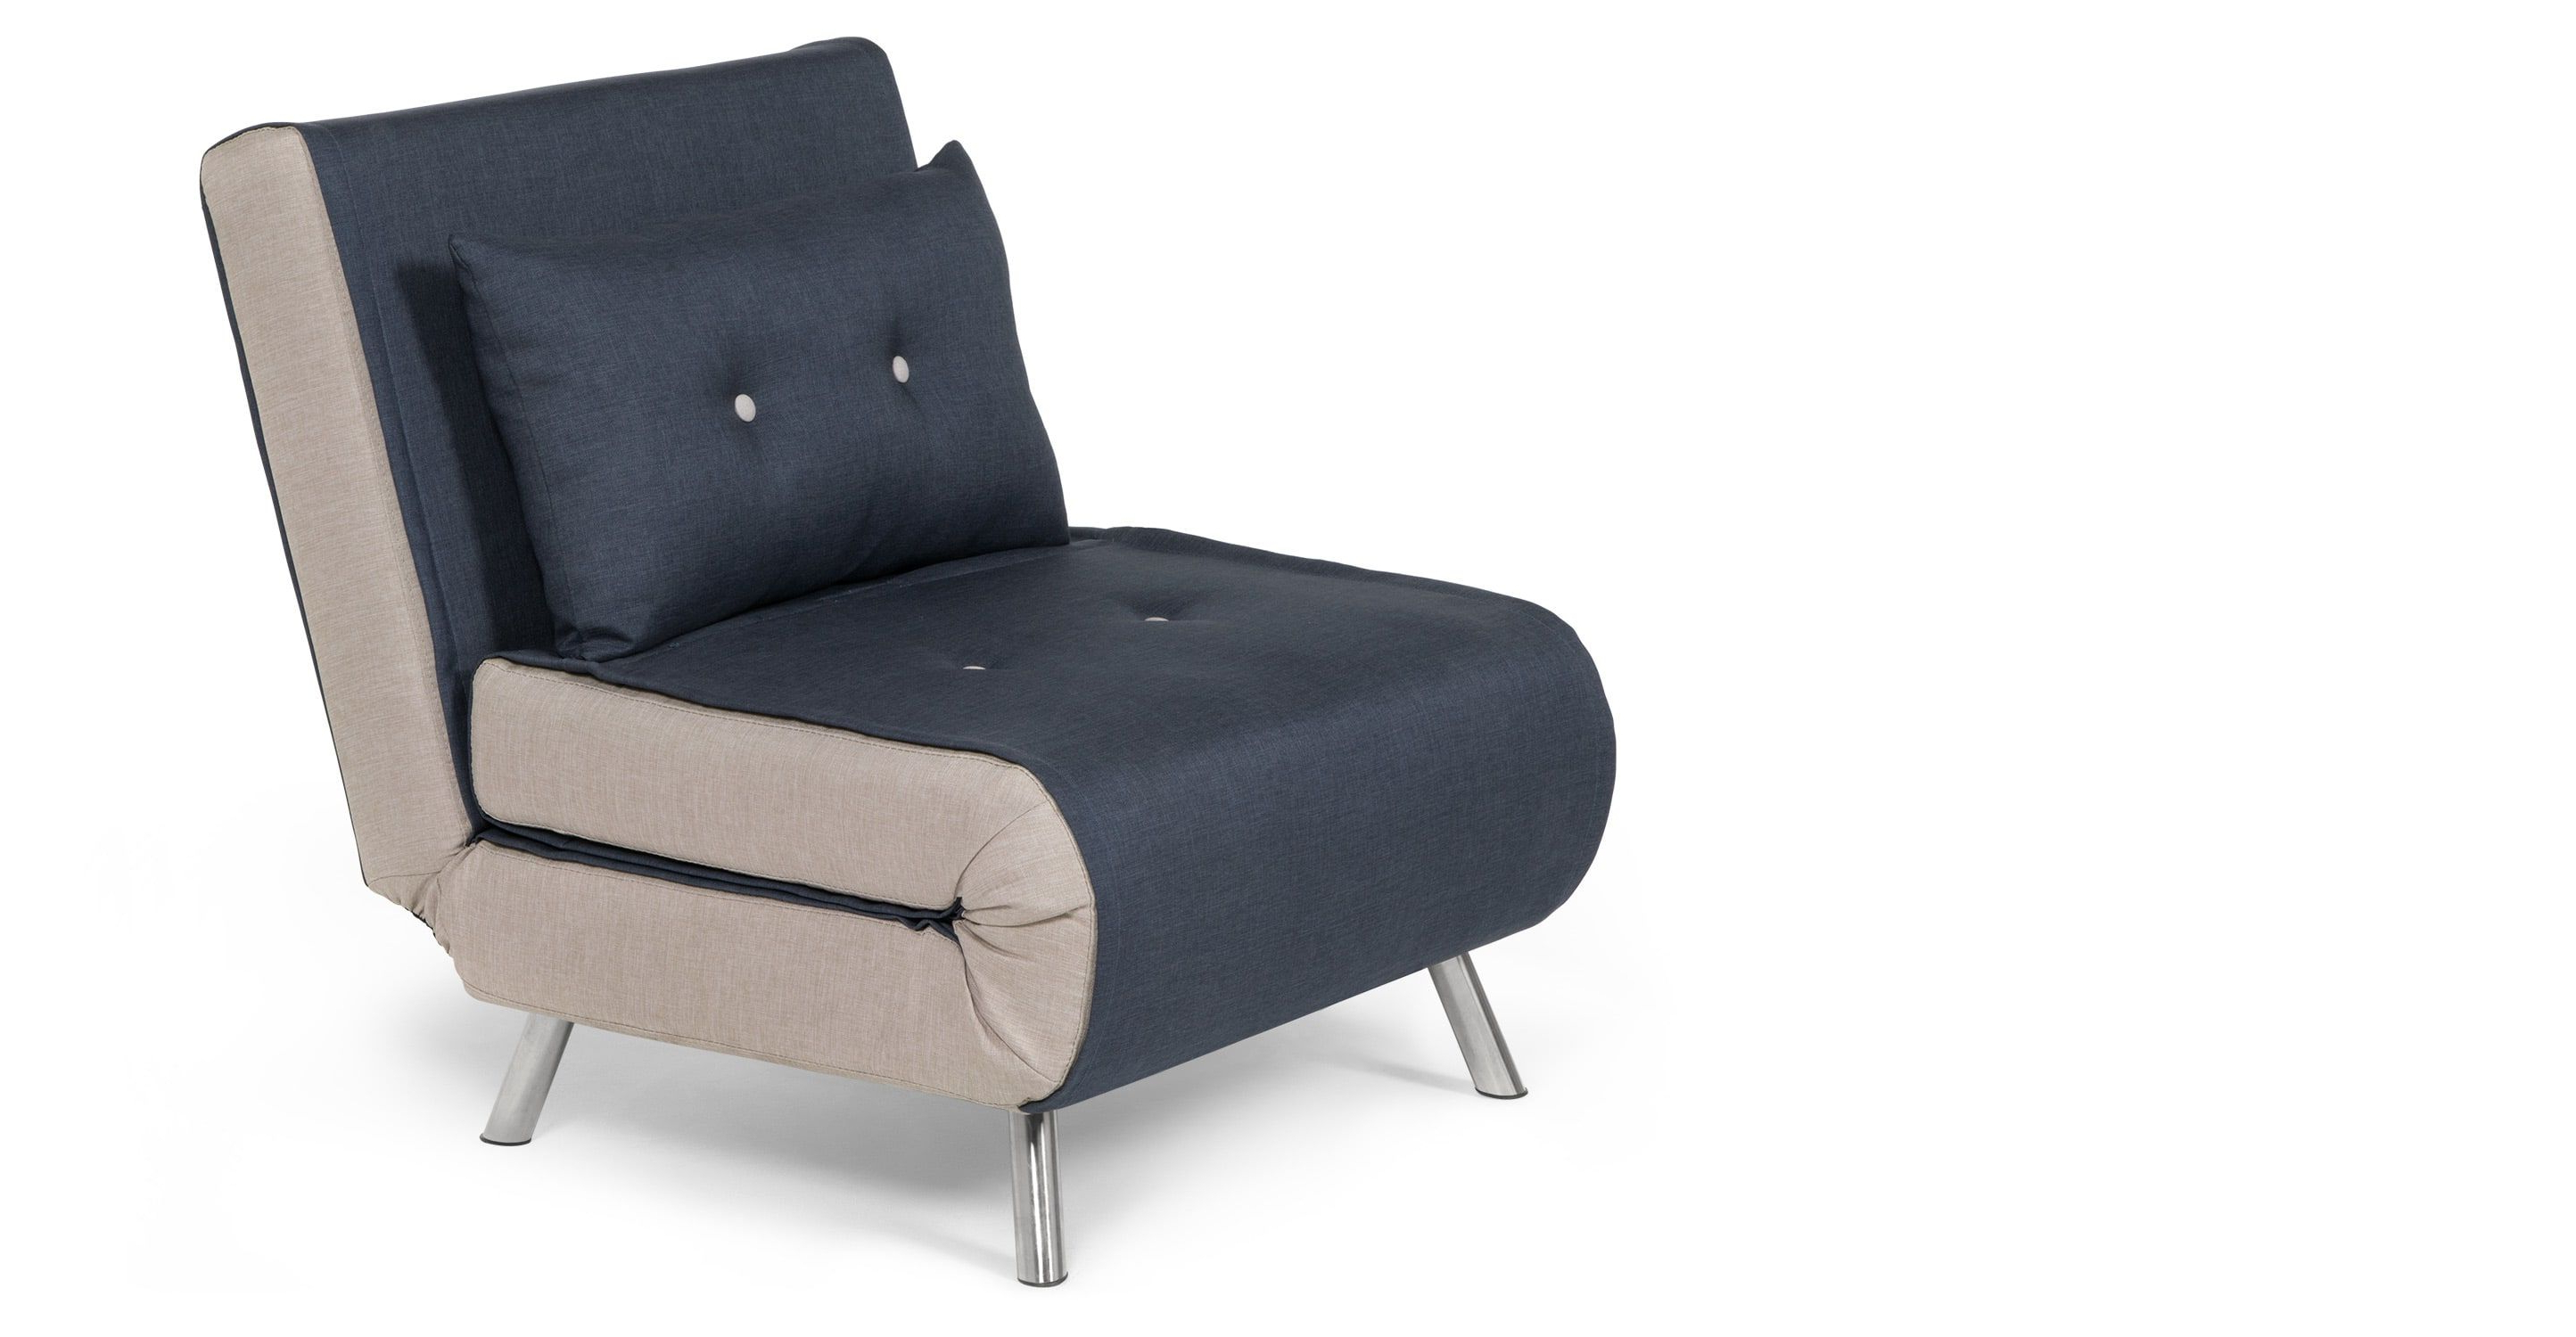 Single Chair Sofa Bed For Widely Used Made Single Sofa Bed, Quartz Blue. Upholstered (View 6 of 20)